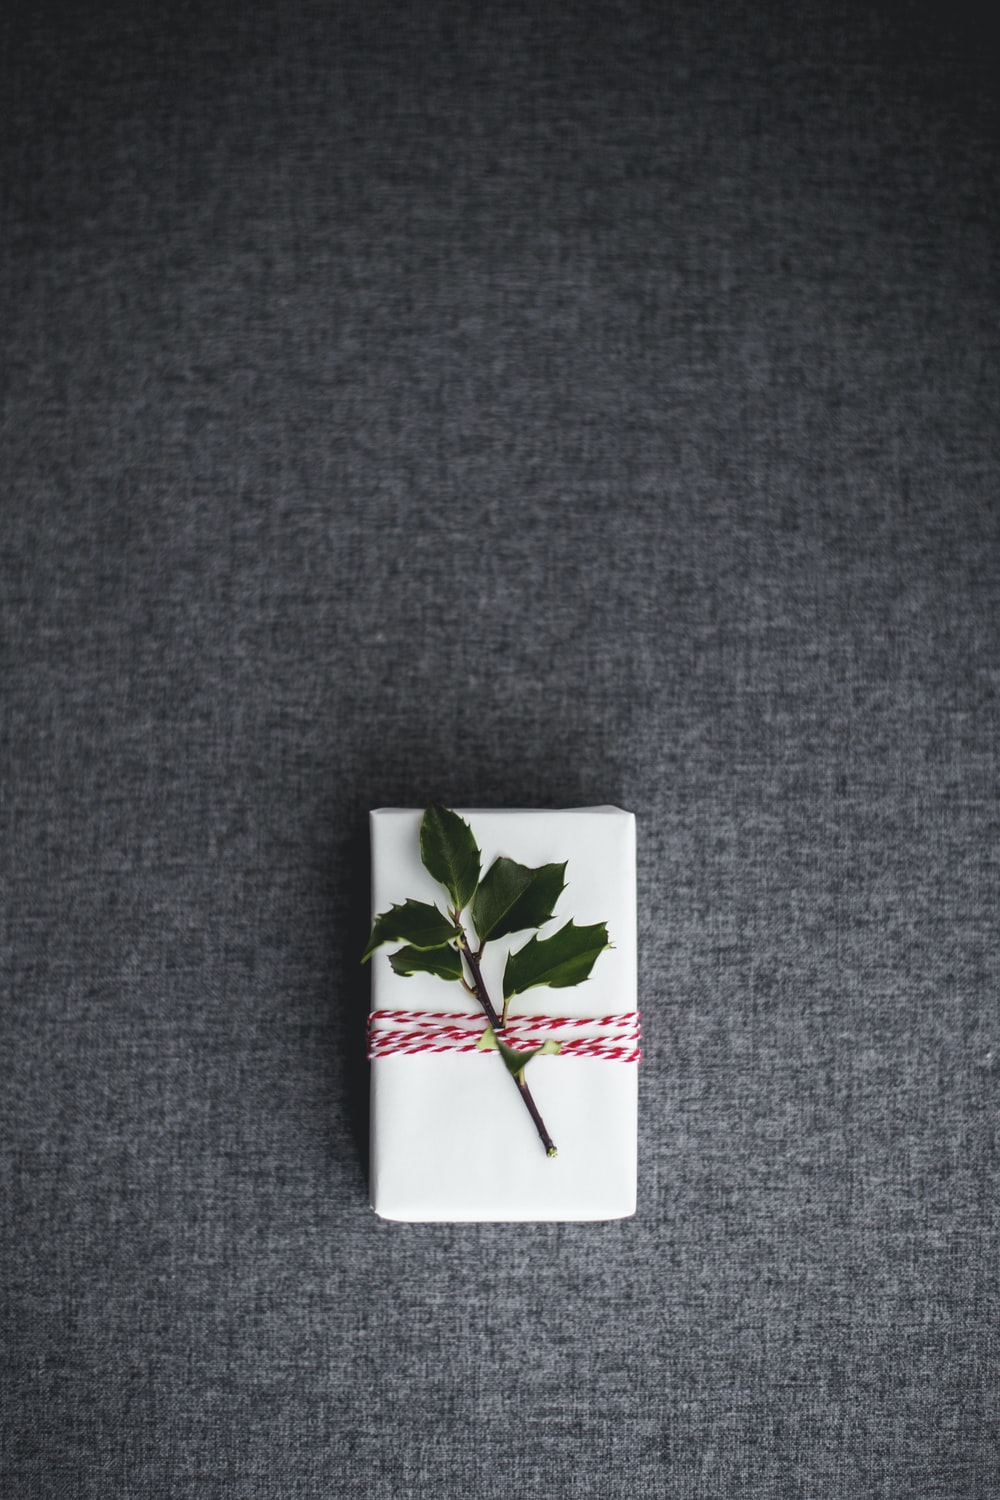 green leaves on white box placed on gray textile